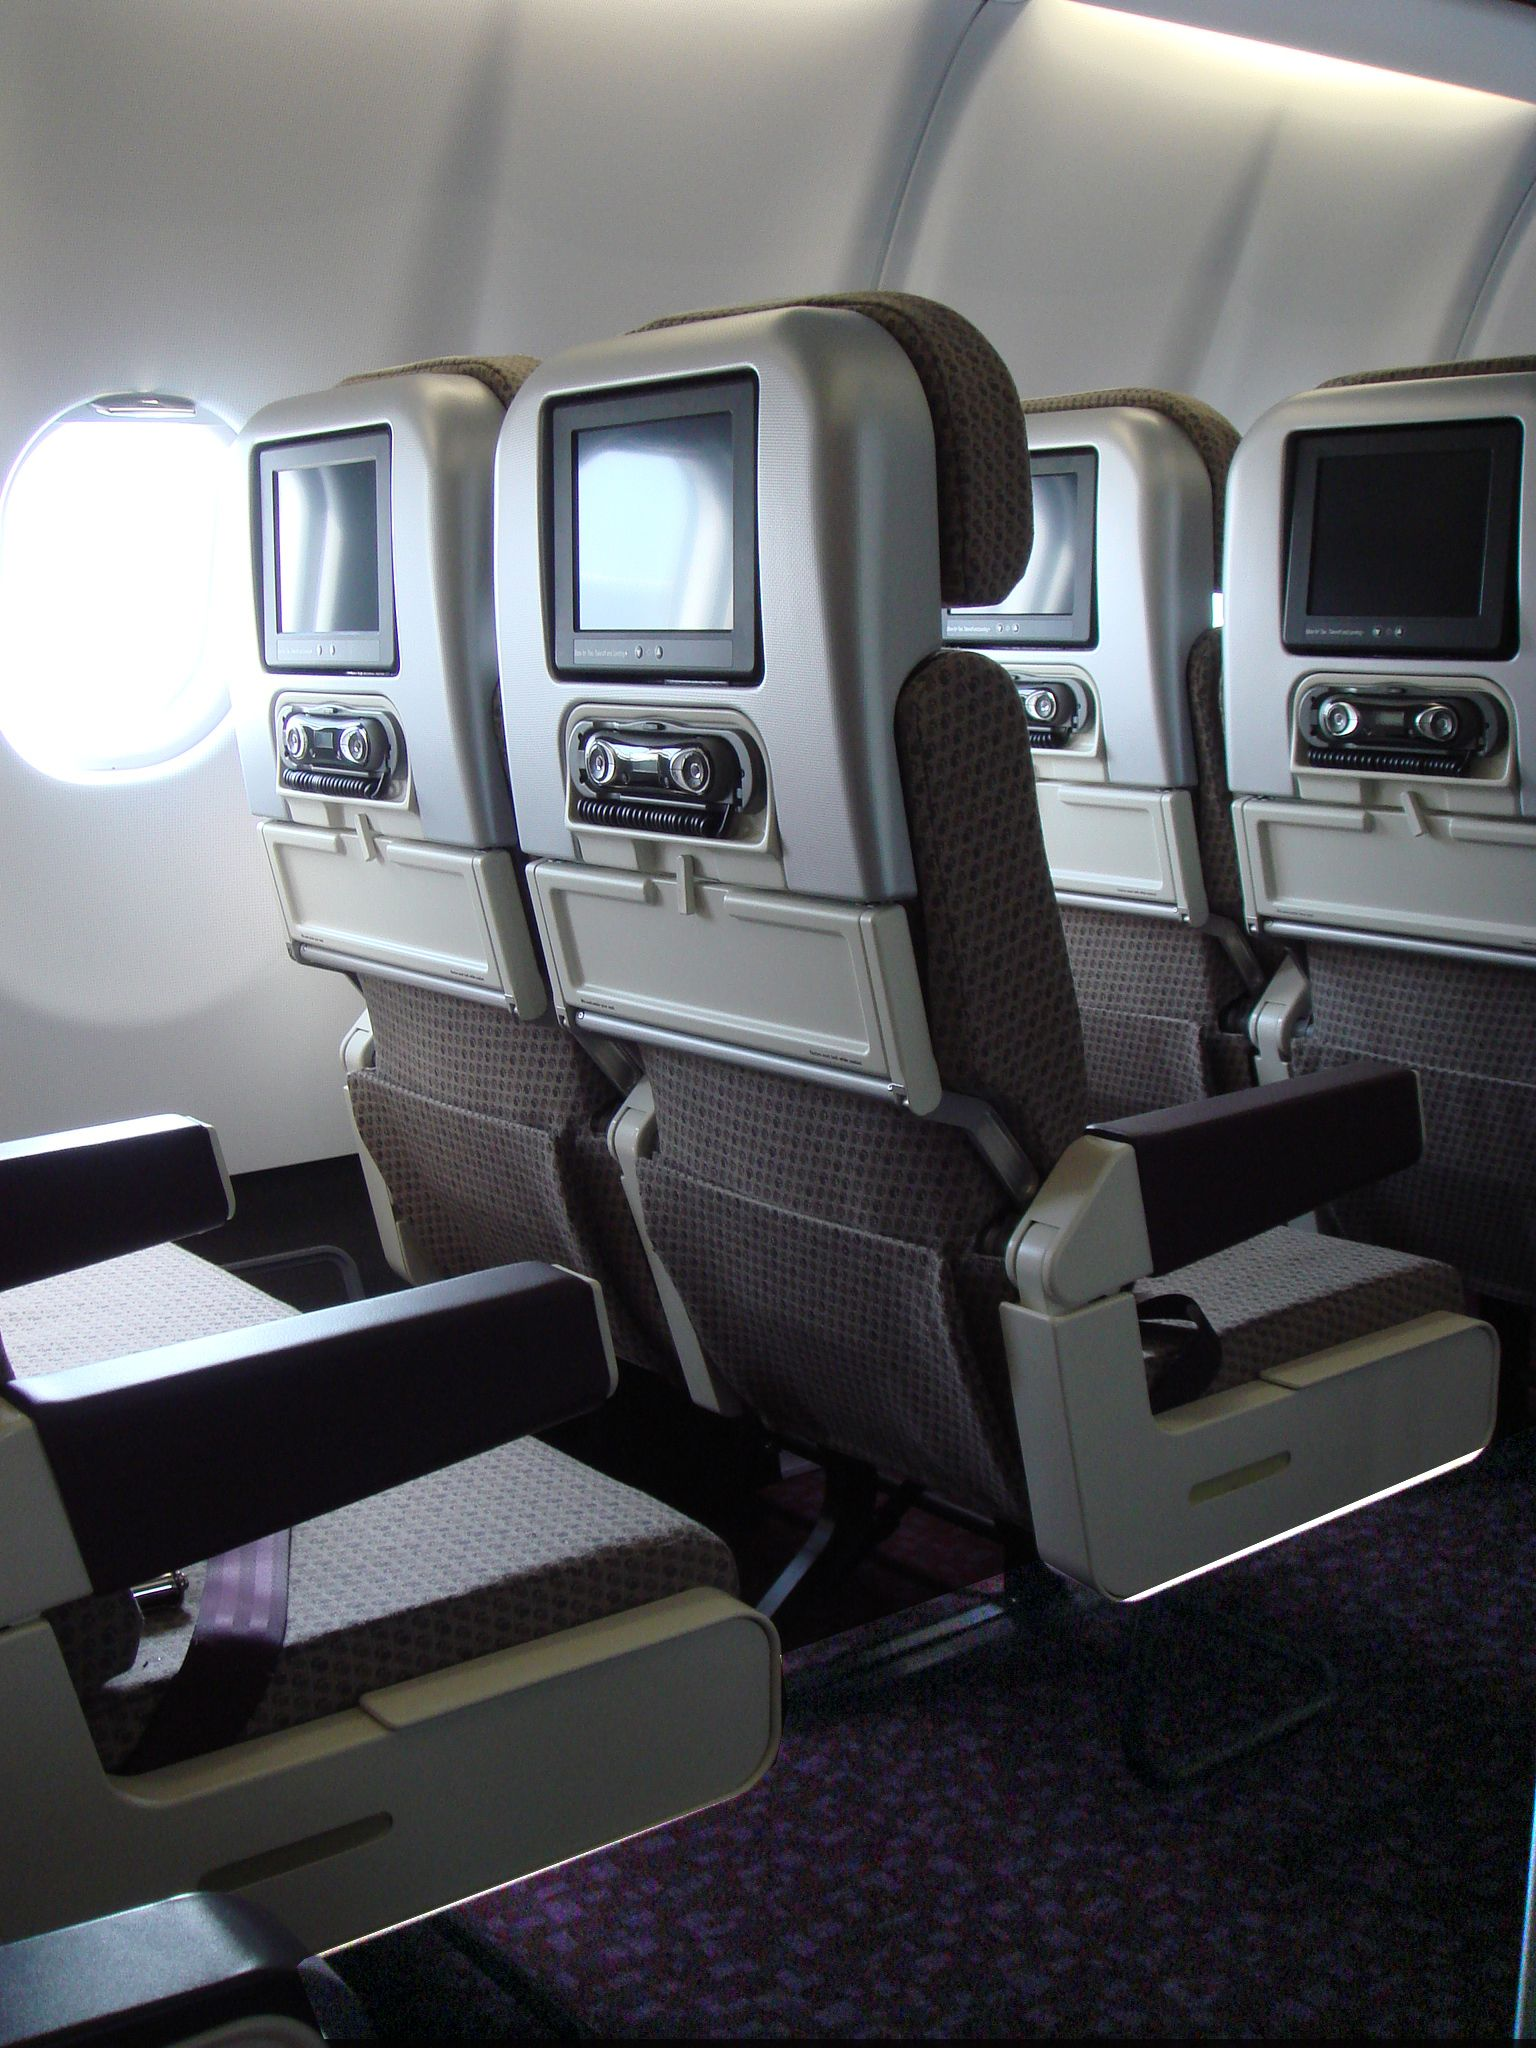 Virgin atlantic airways economy seats design for International seating and decor